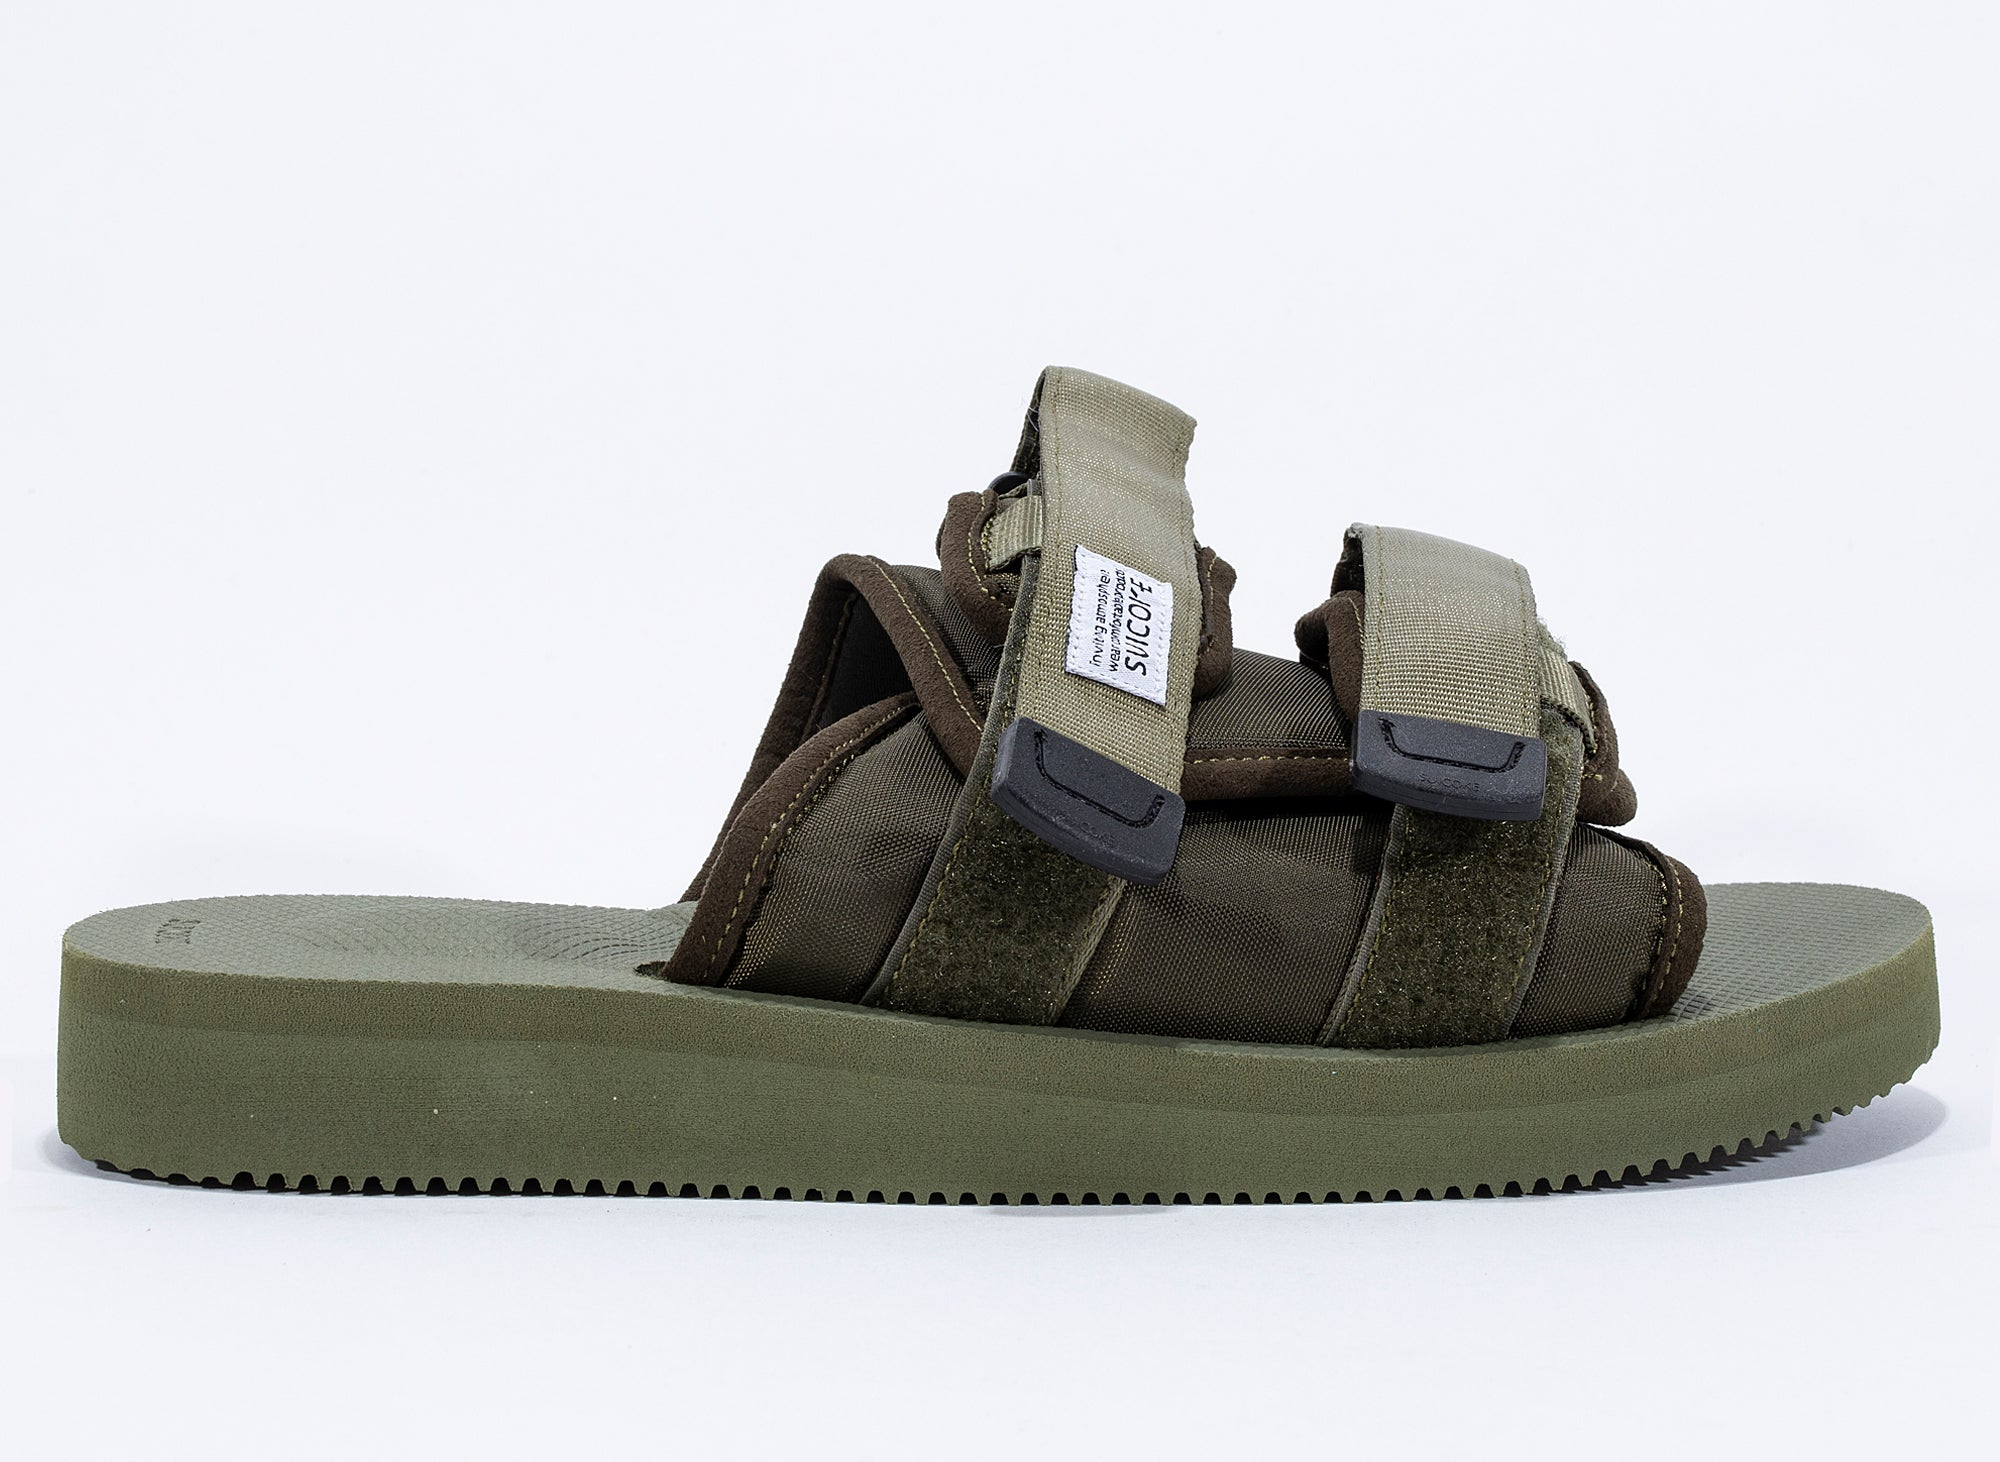 Suicoke Moto-Cab Sandals in Olive